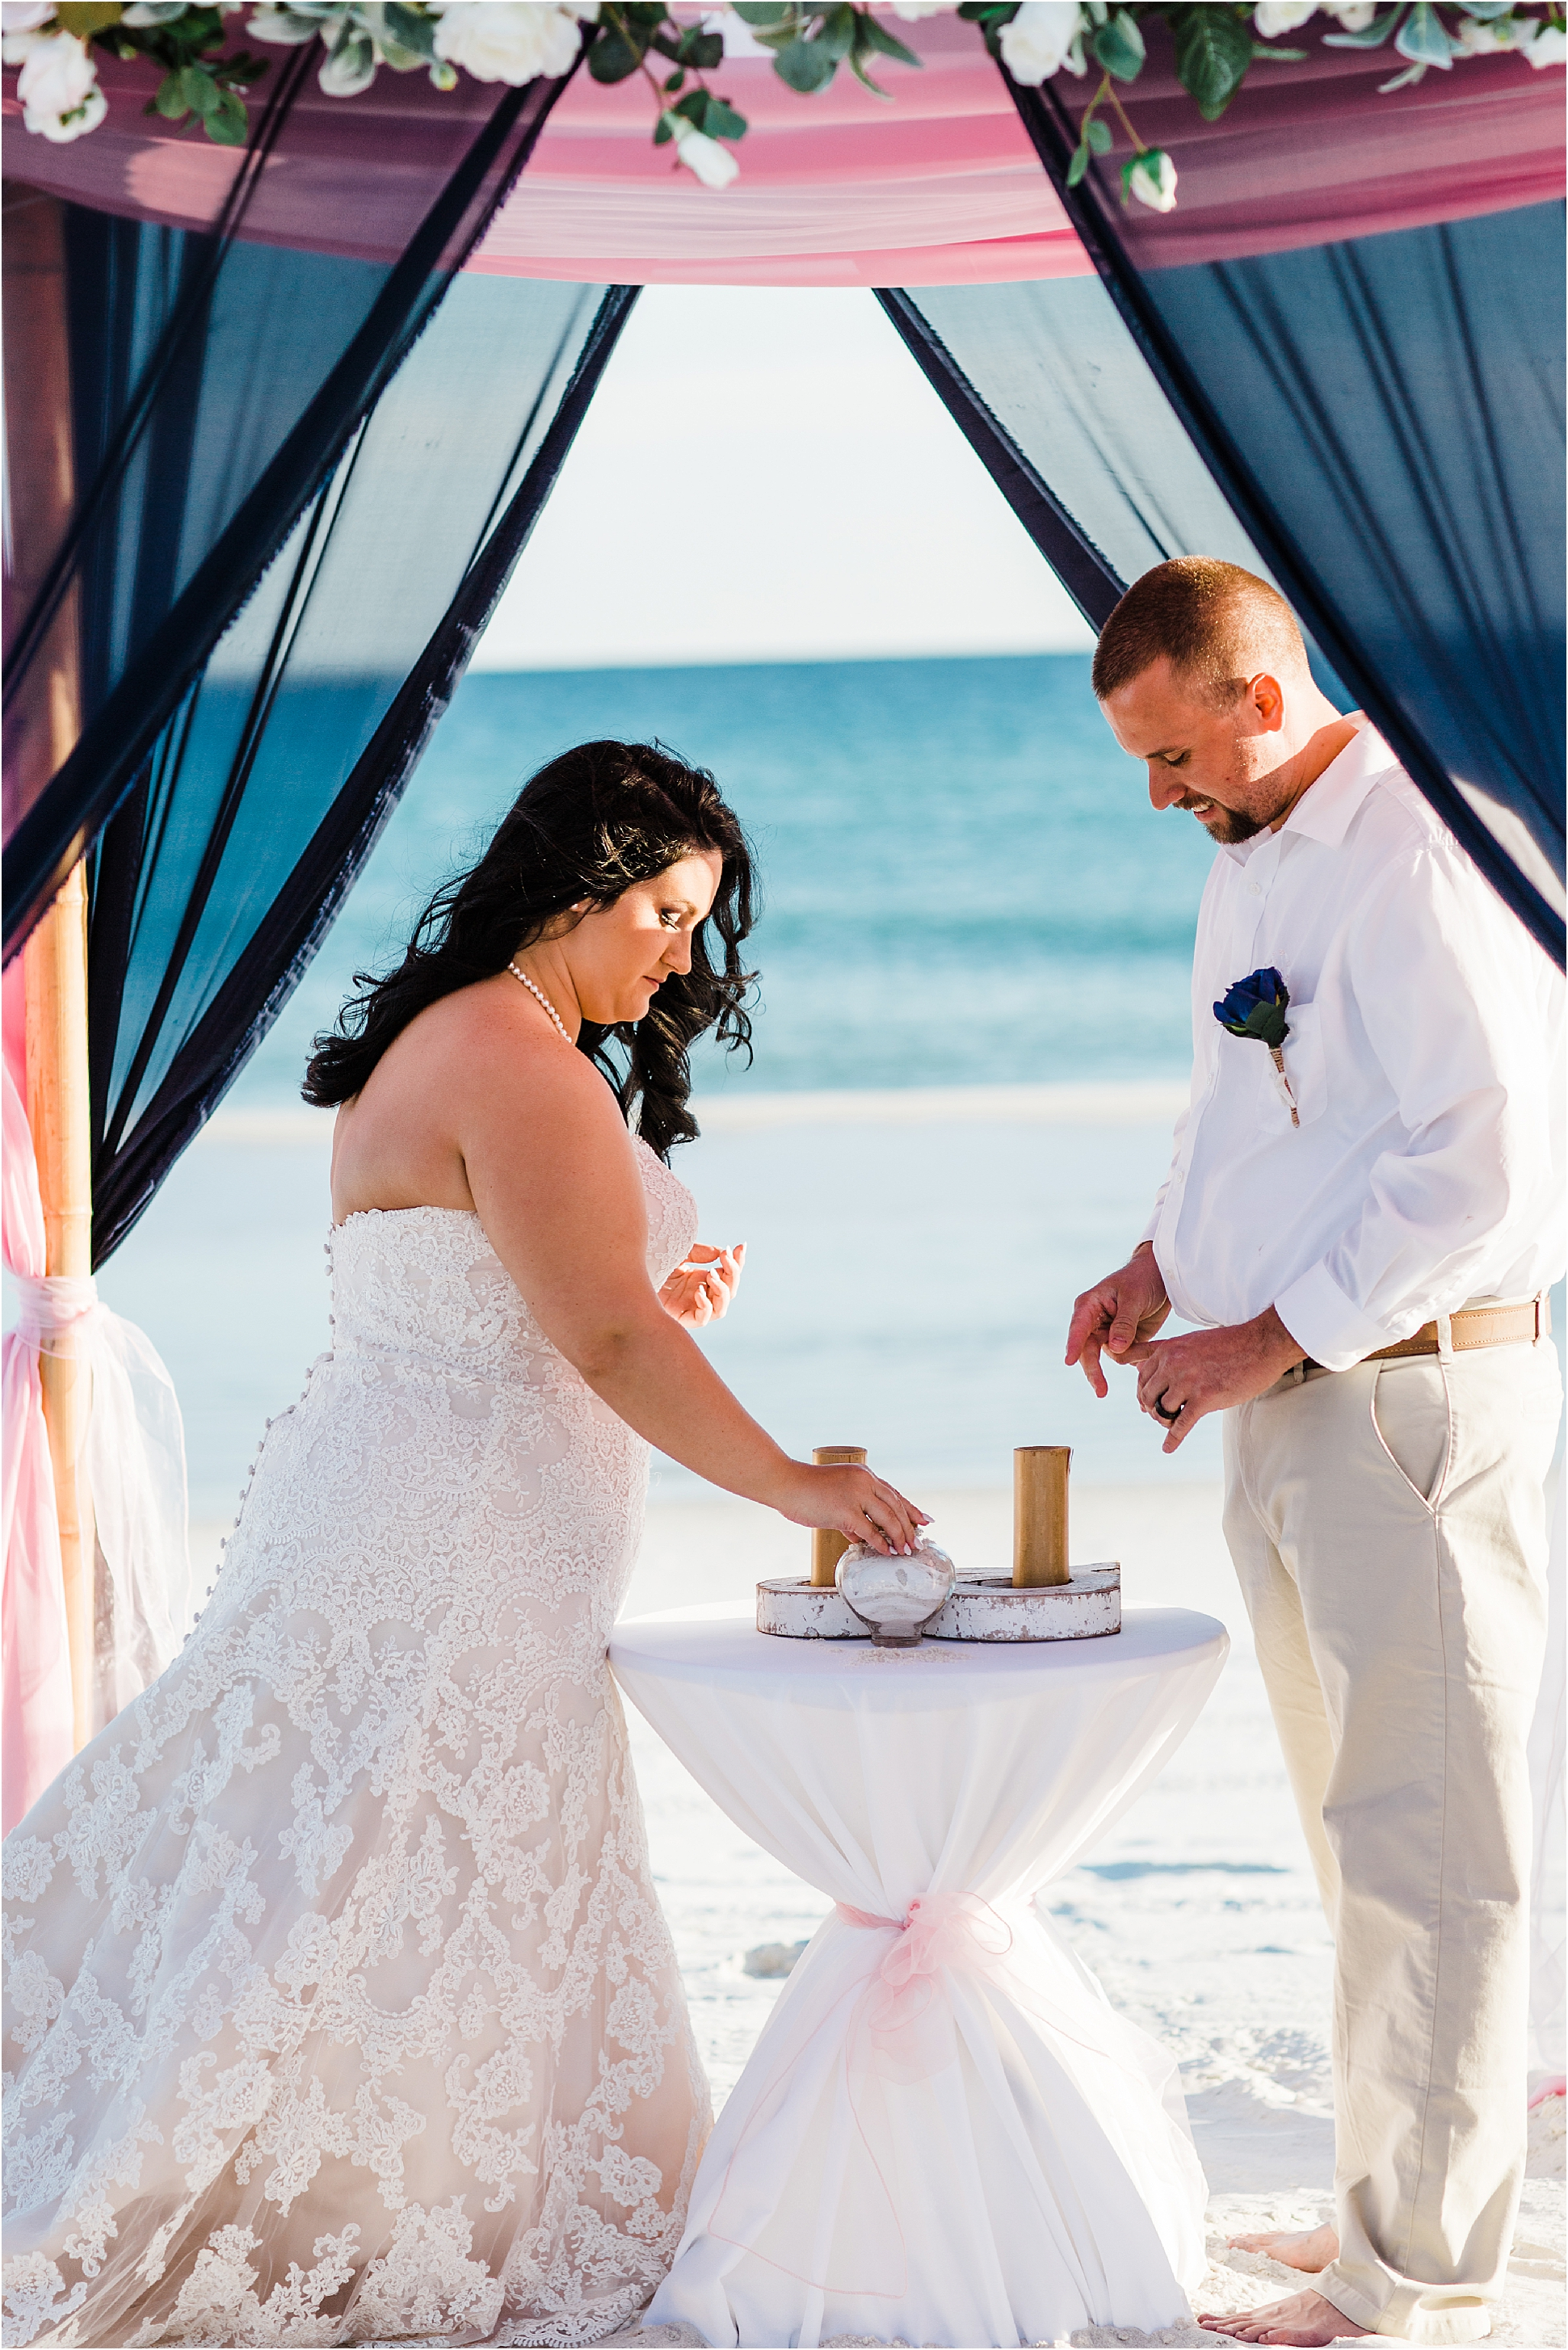 Sand Ceremony In Gulf Shores